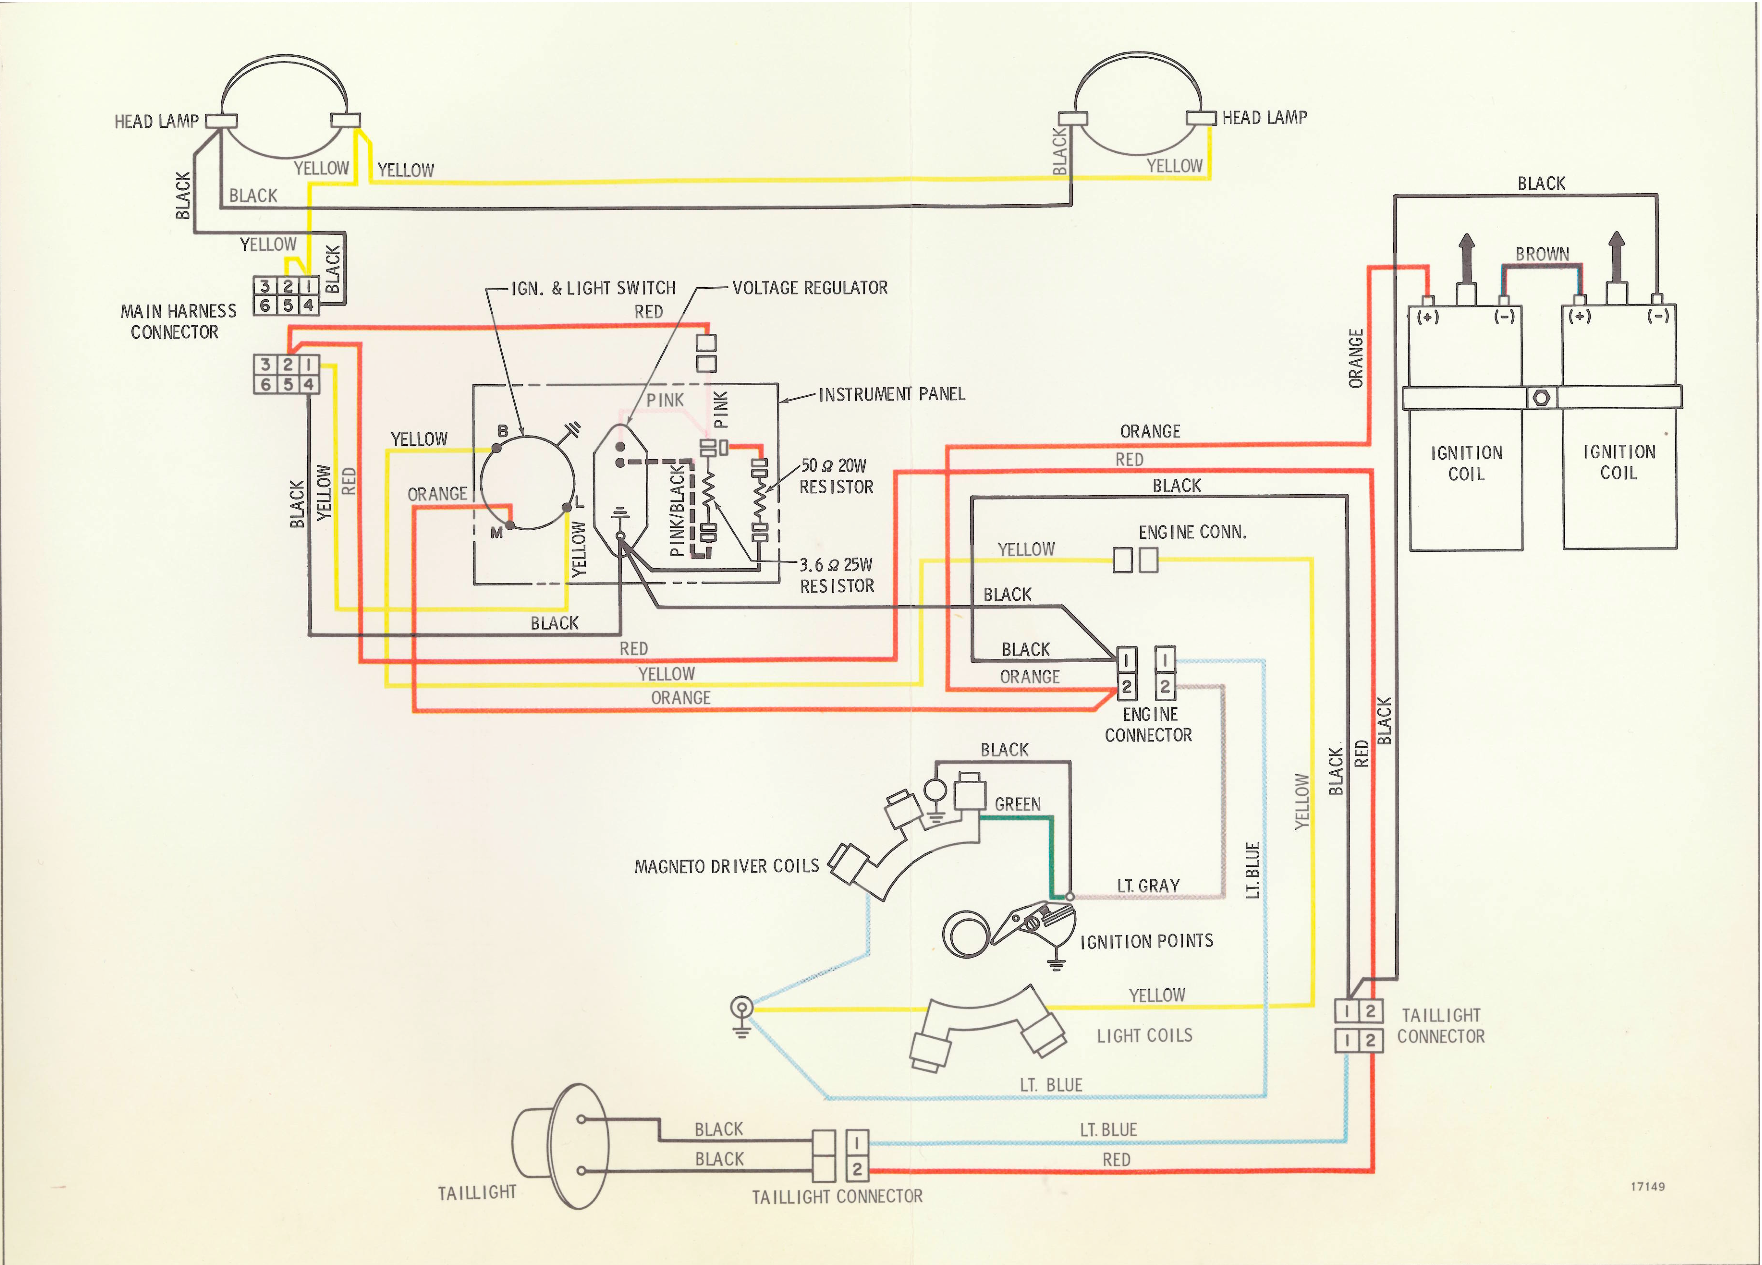 753 Bobcat Wiring Diagram Network Cable Wiring Diagram Bege Wiring Diagram